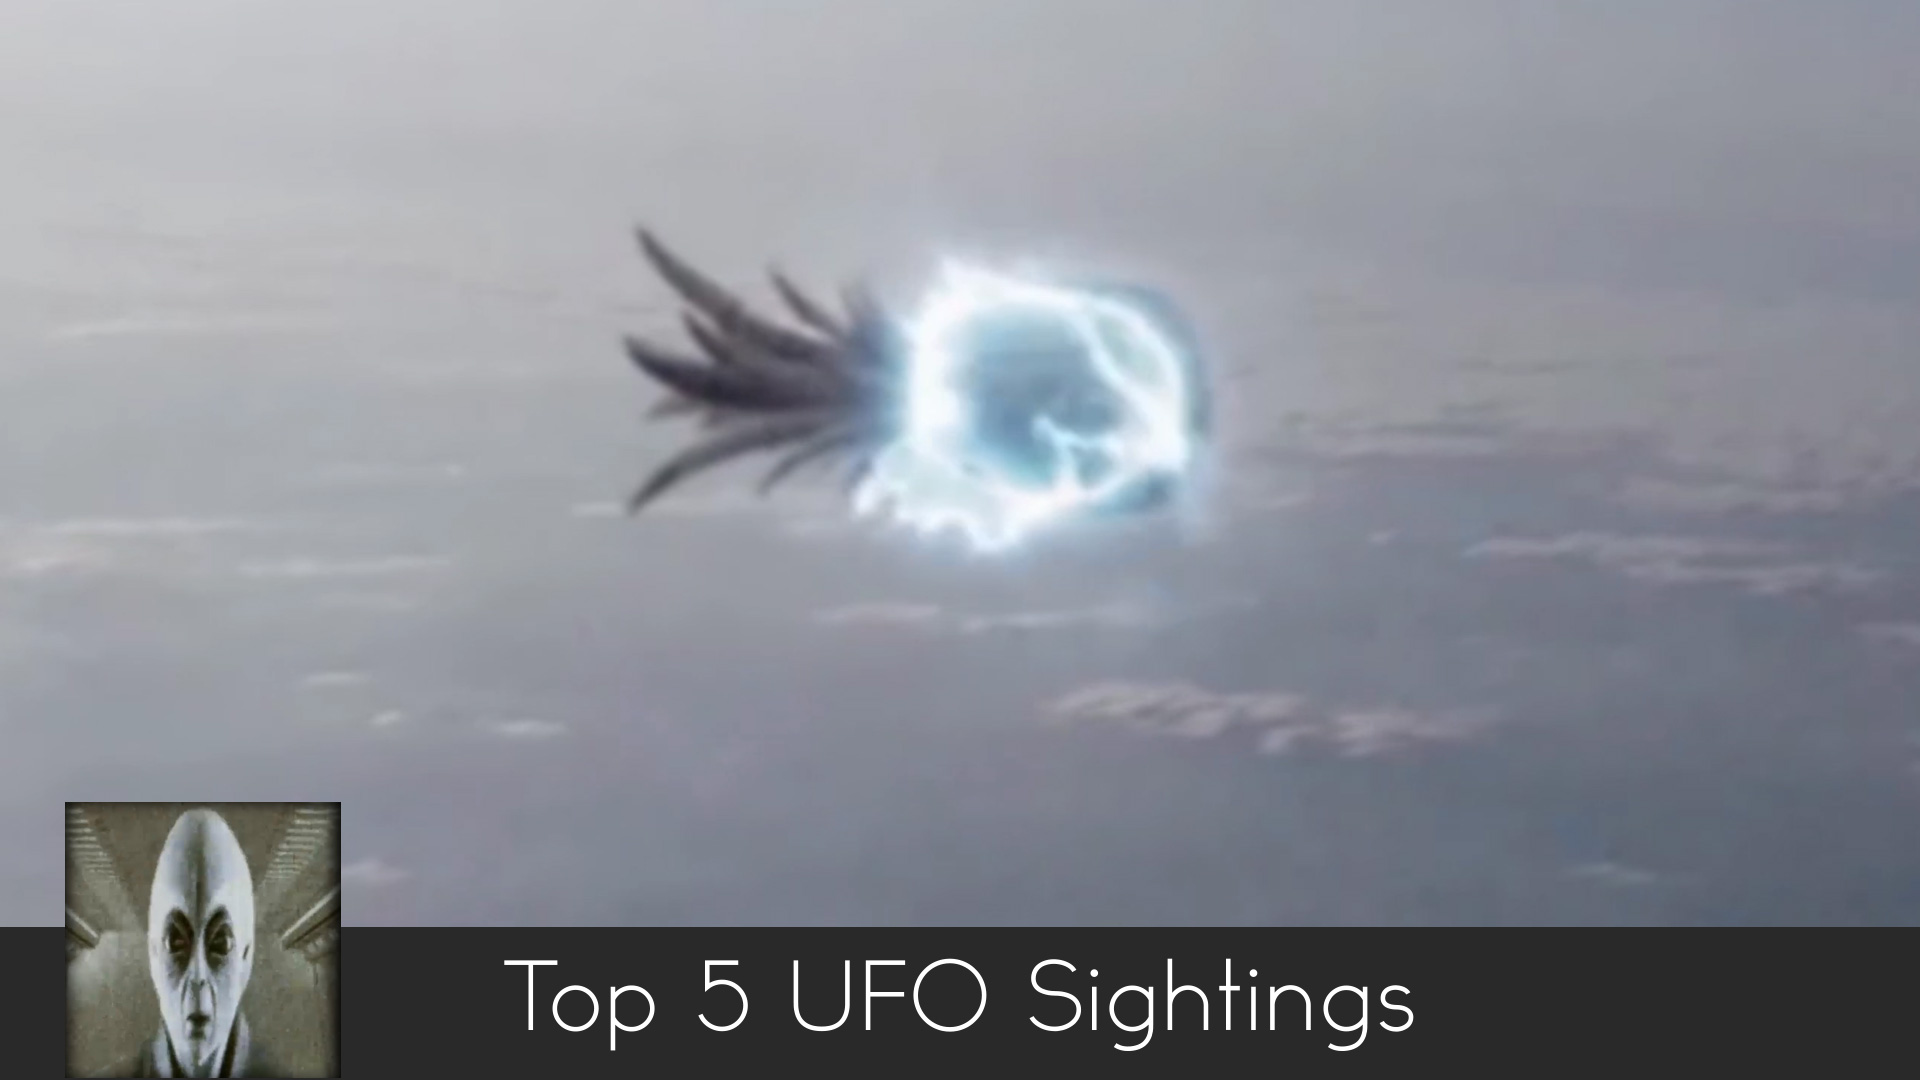 Top 5 UFO Sightings February 3rd 2017 | iufosightings